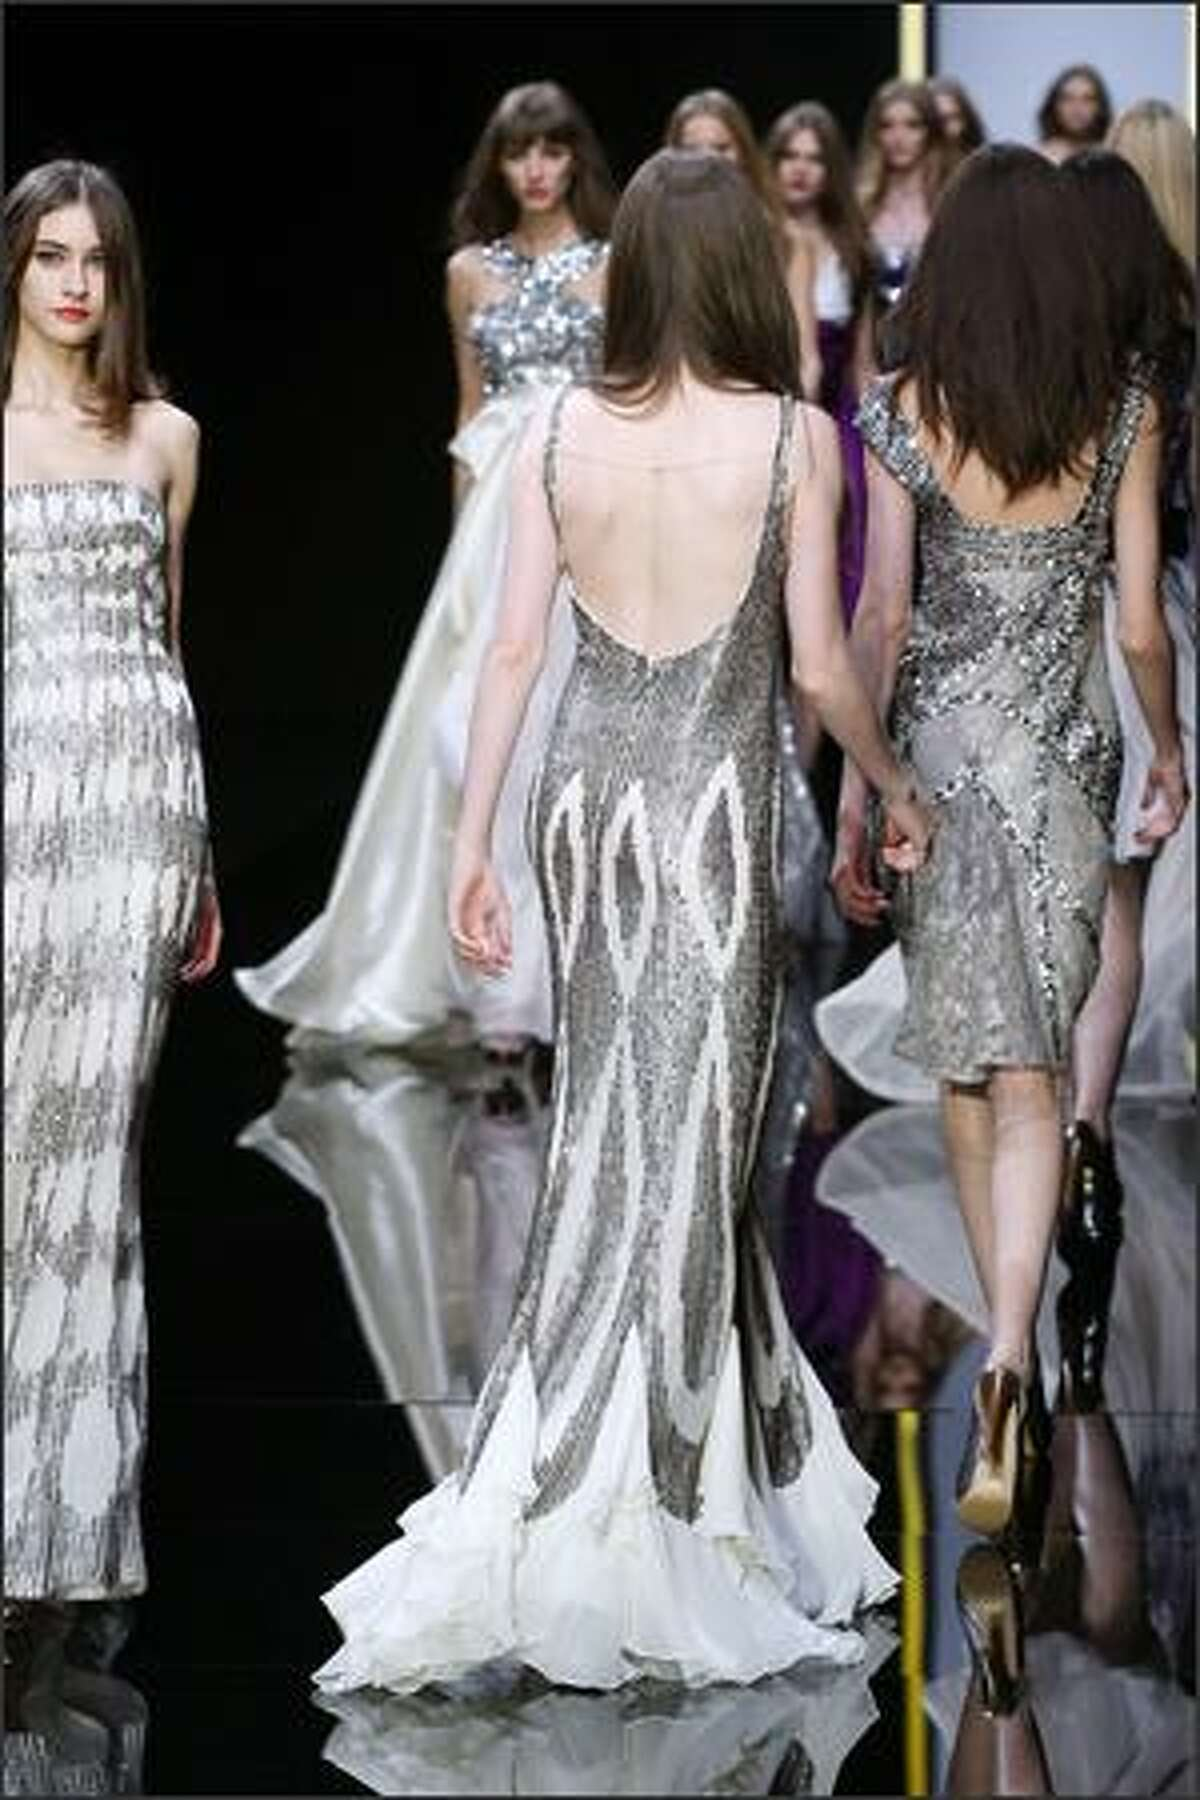 Models present creations by Lebanese designer Elie Saab during Spring/Summer 2008 ready-to-wear collection show in Paris, 06 October 2007.